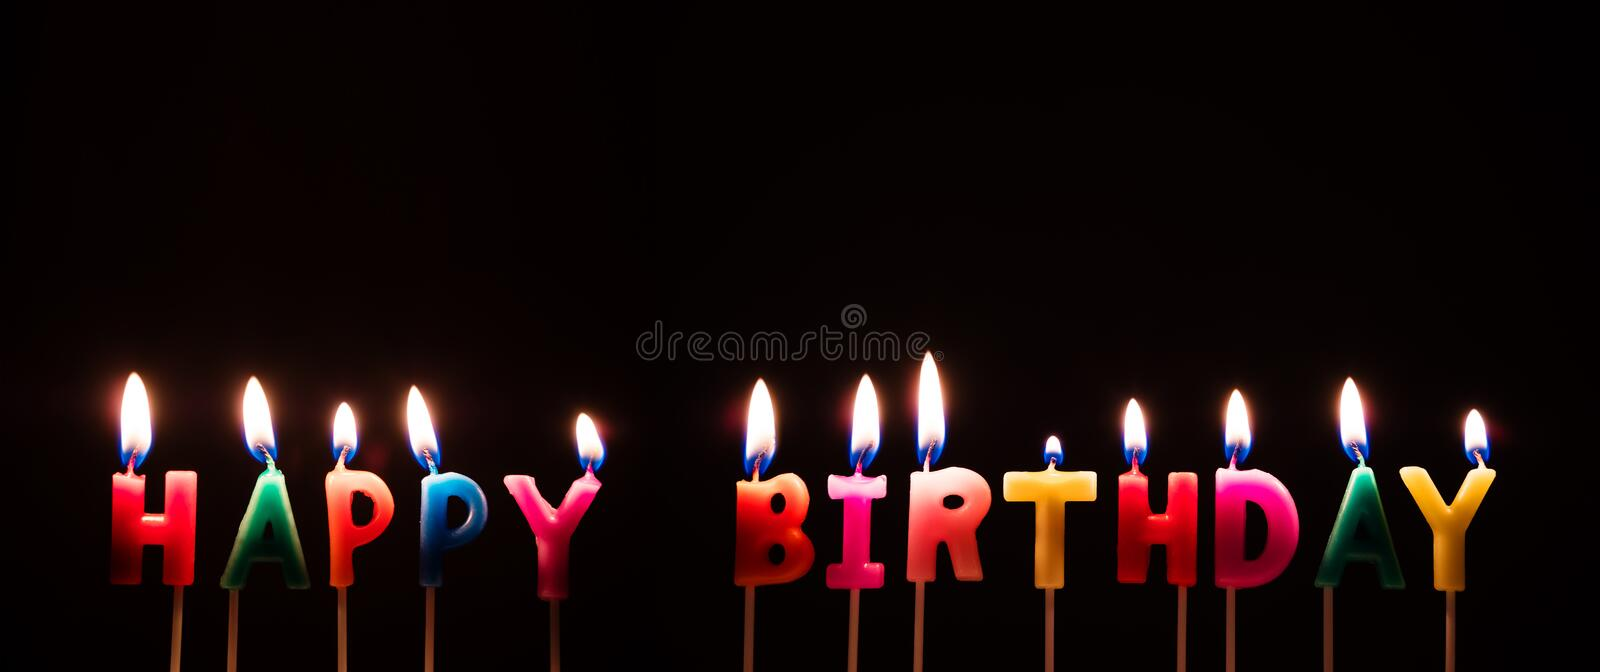 Colorful Happy Birthday Candles, On Black Background Stock